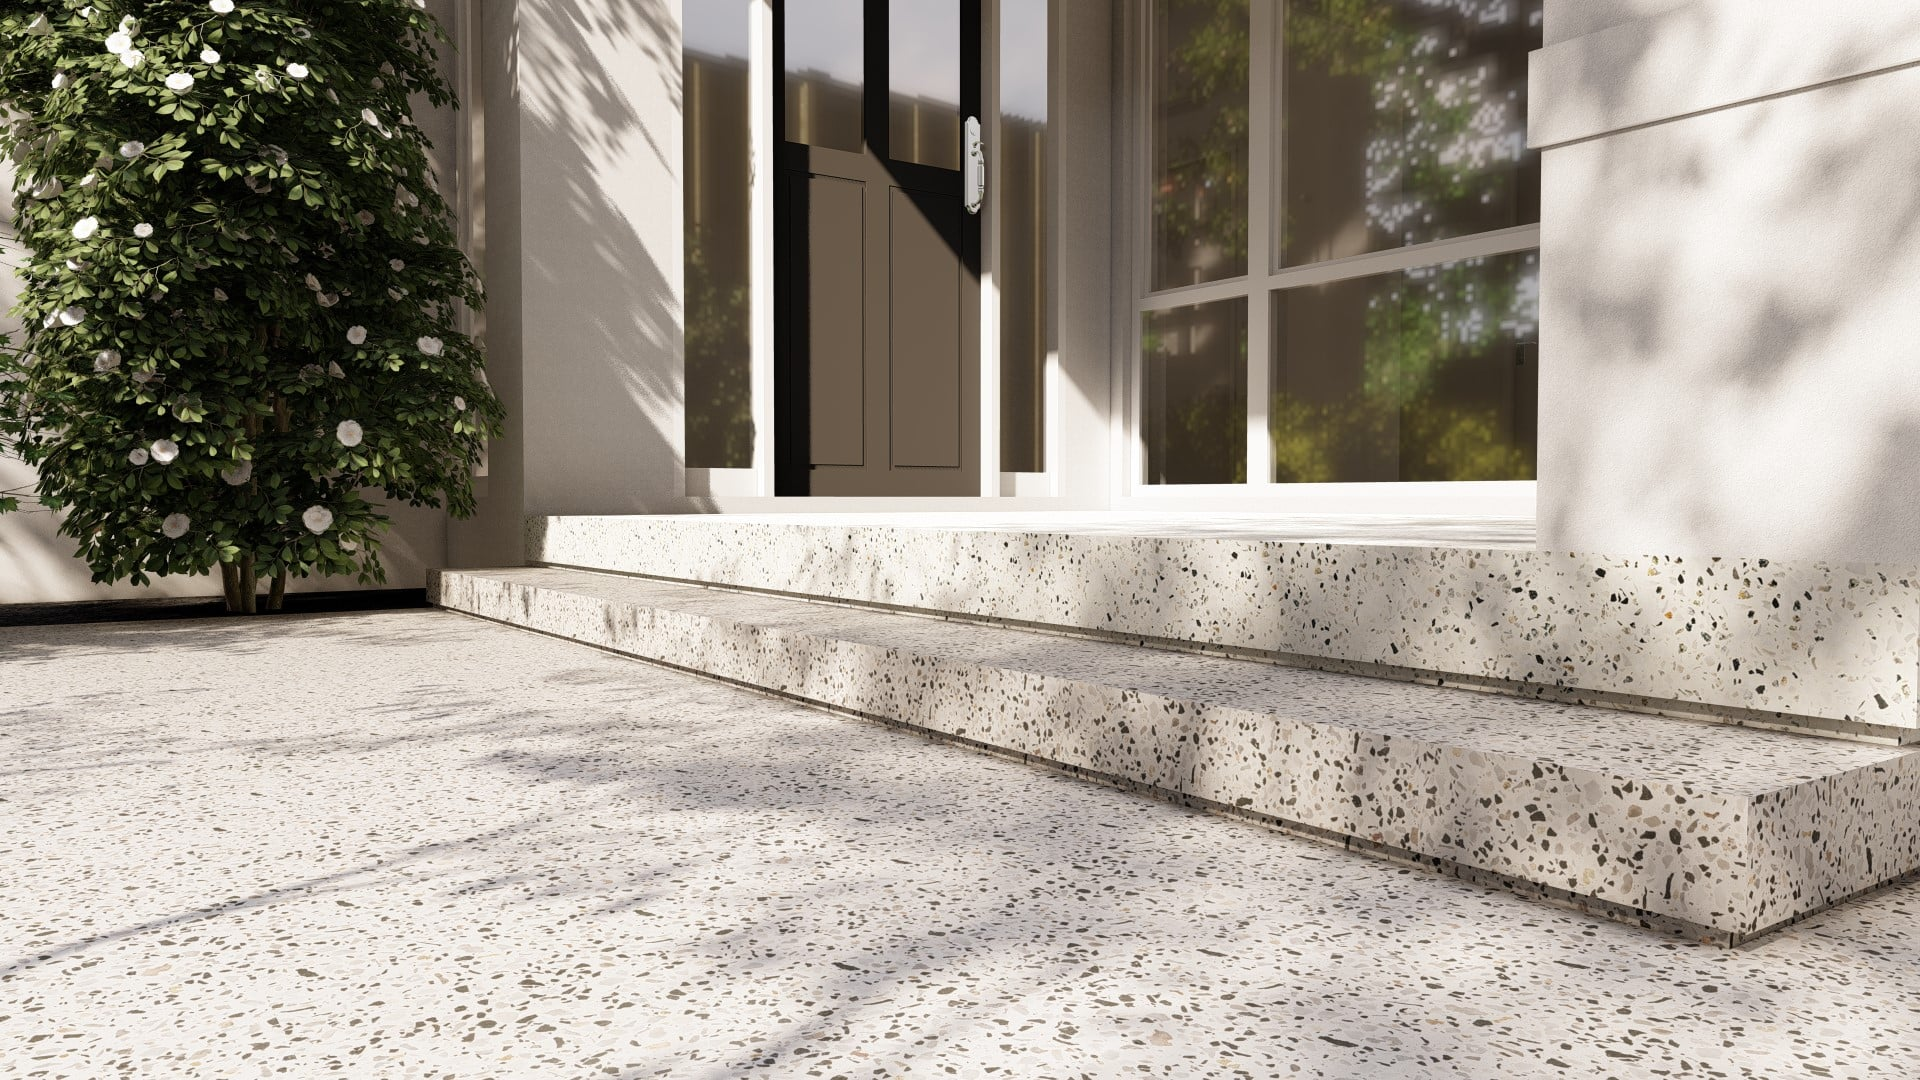 perth decorative concrete 3d design render applecross steps